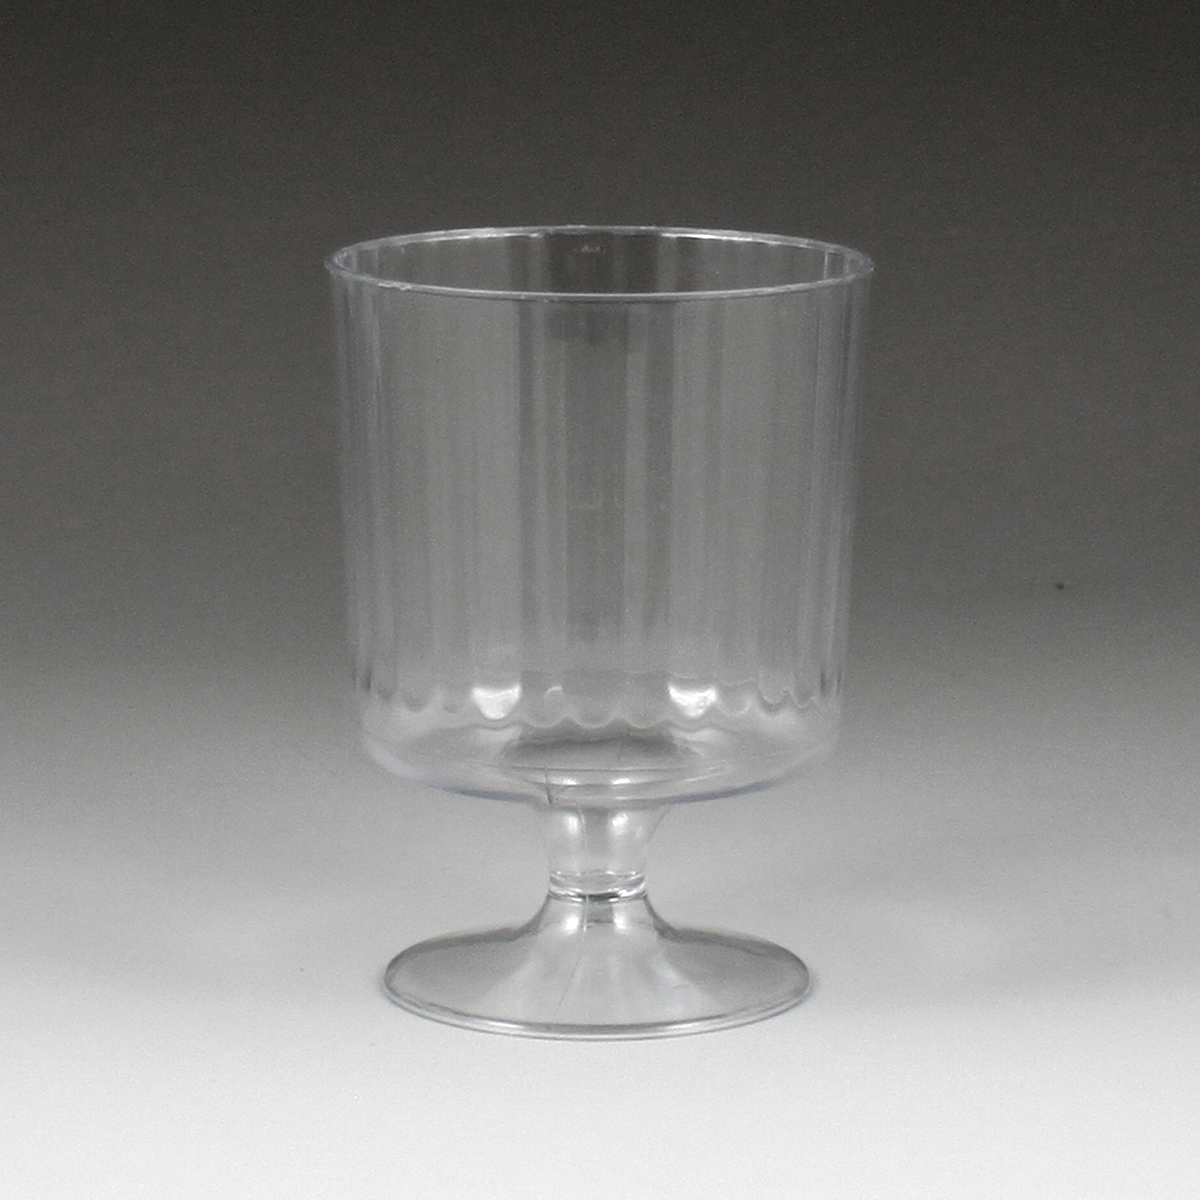 5 Oz Tiny Tasters Mini Trifle Dish Plastic Cups